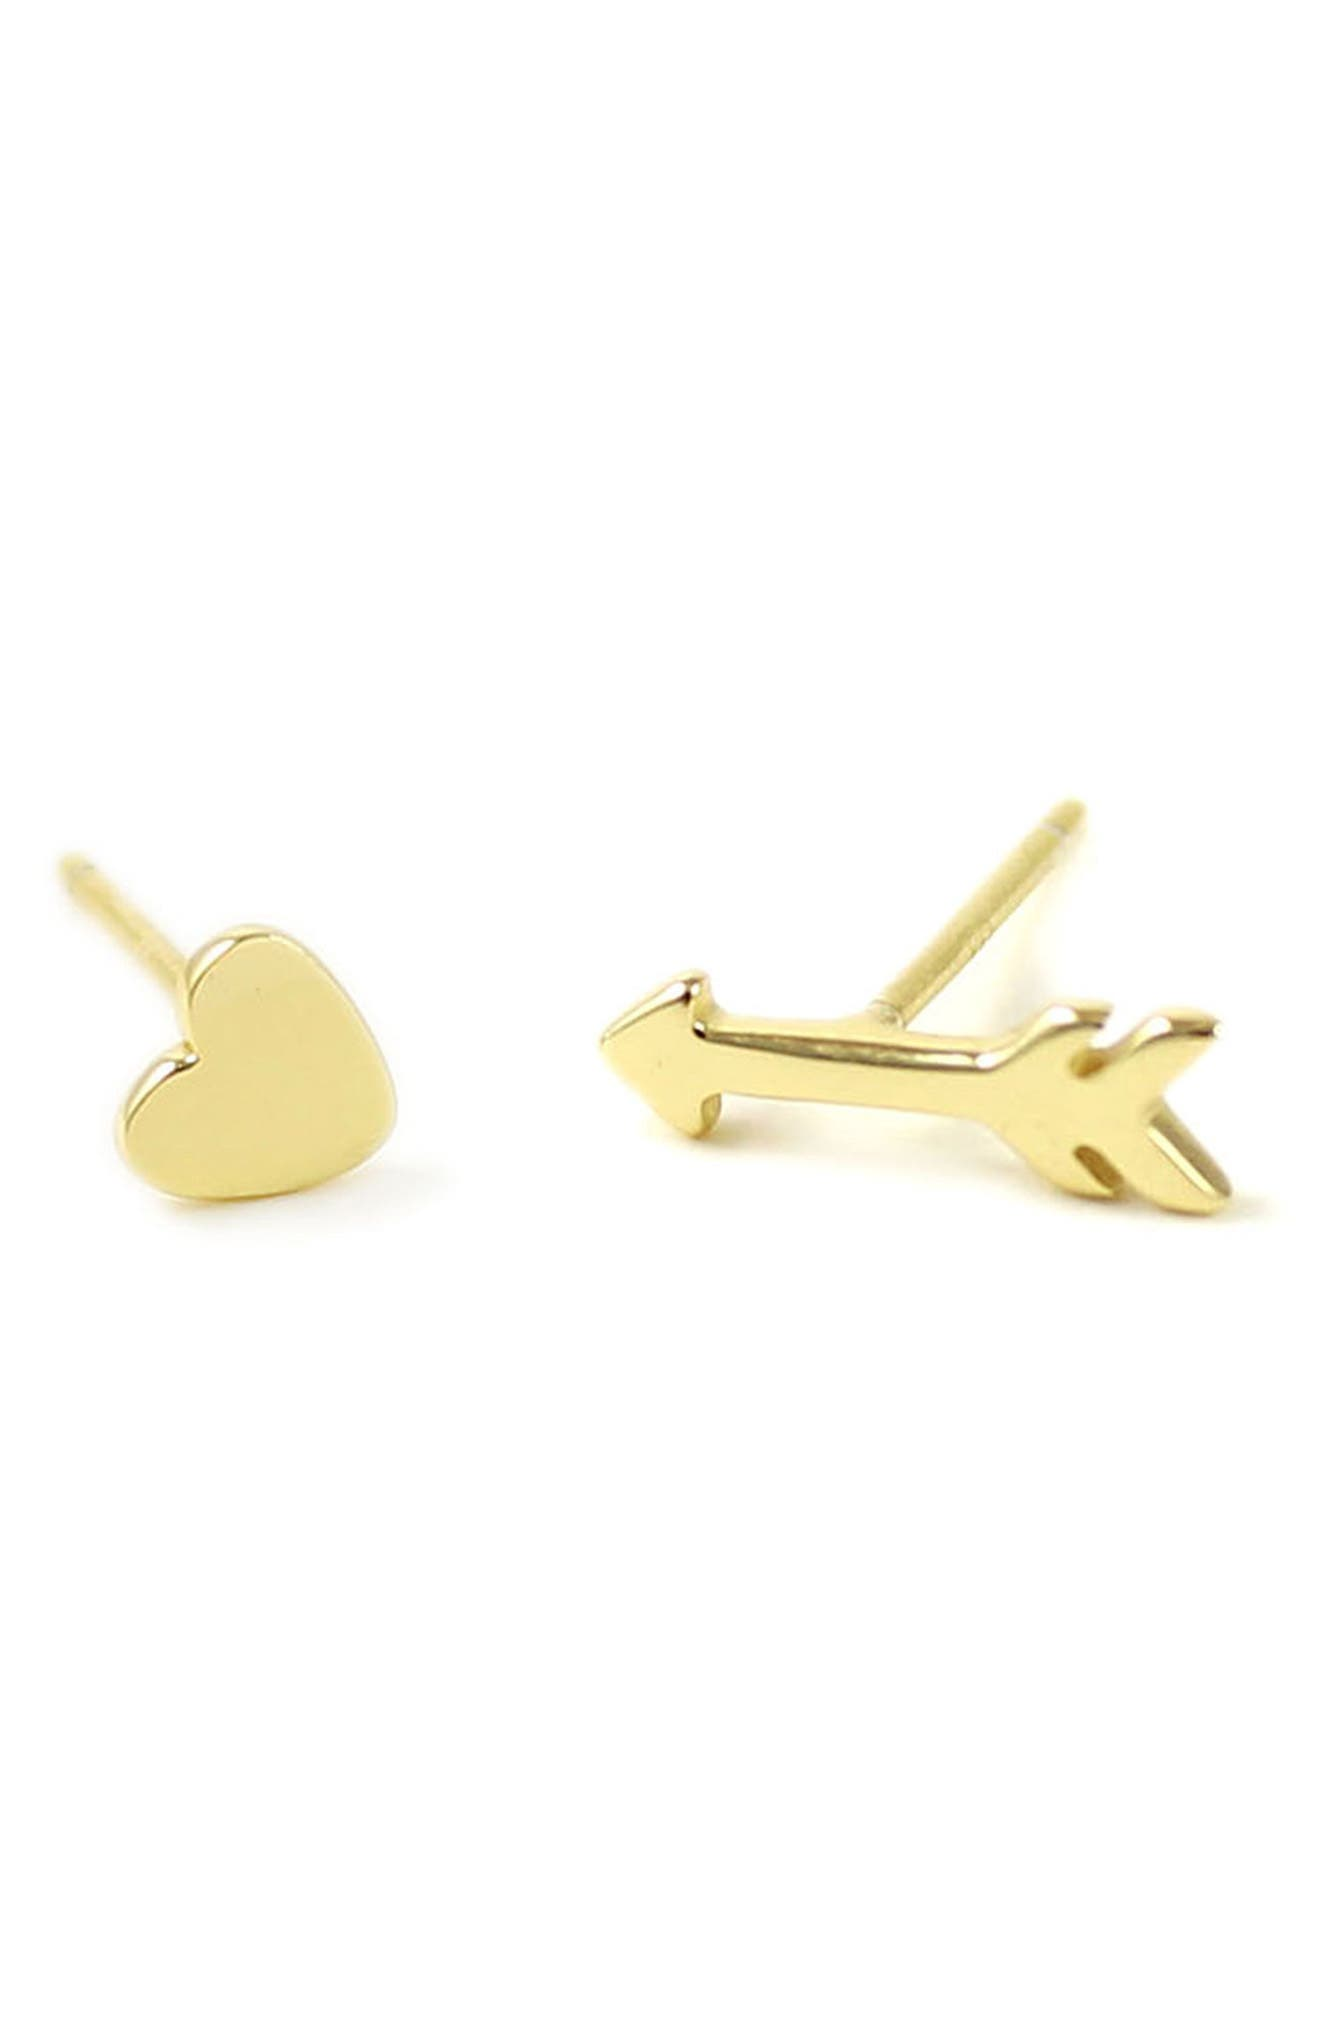 Heart & Arrow Stud Earrings,                             Main thumbnail 1, color,                             GOLD